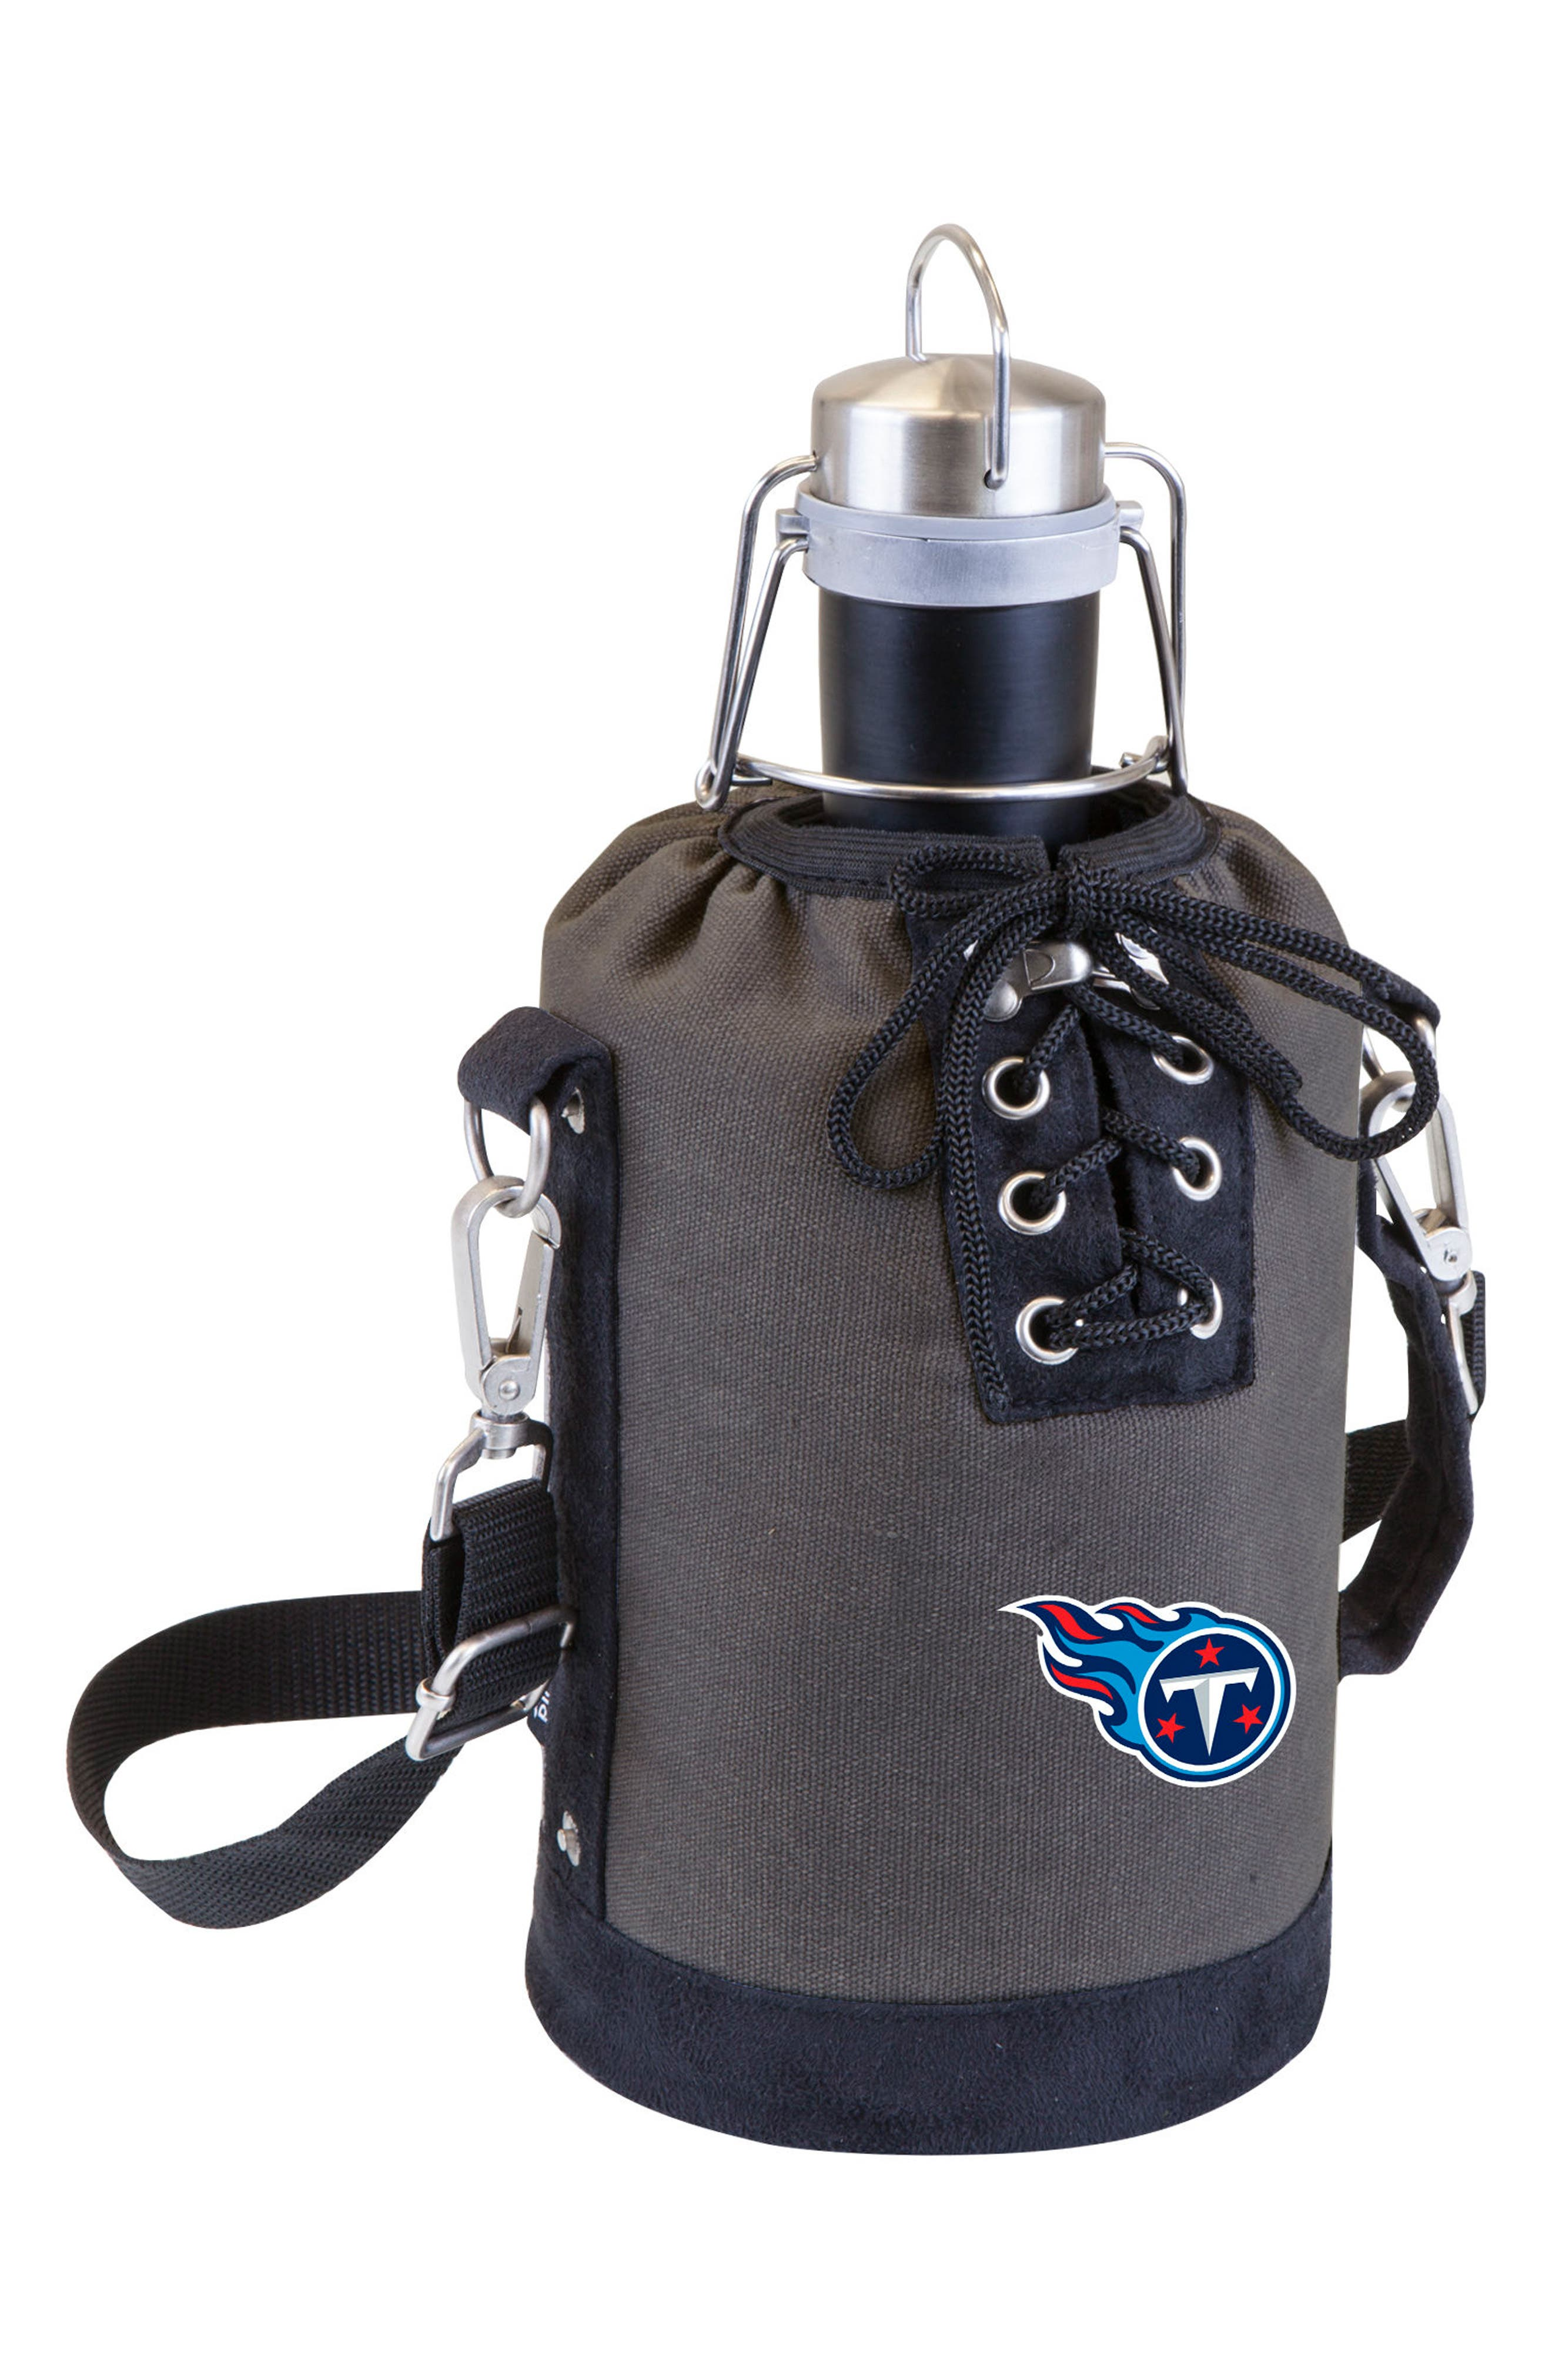 Alternate Image 1 Selected - Picnic Time NFL Team Logo Tote & Stainless Steel Growler